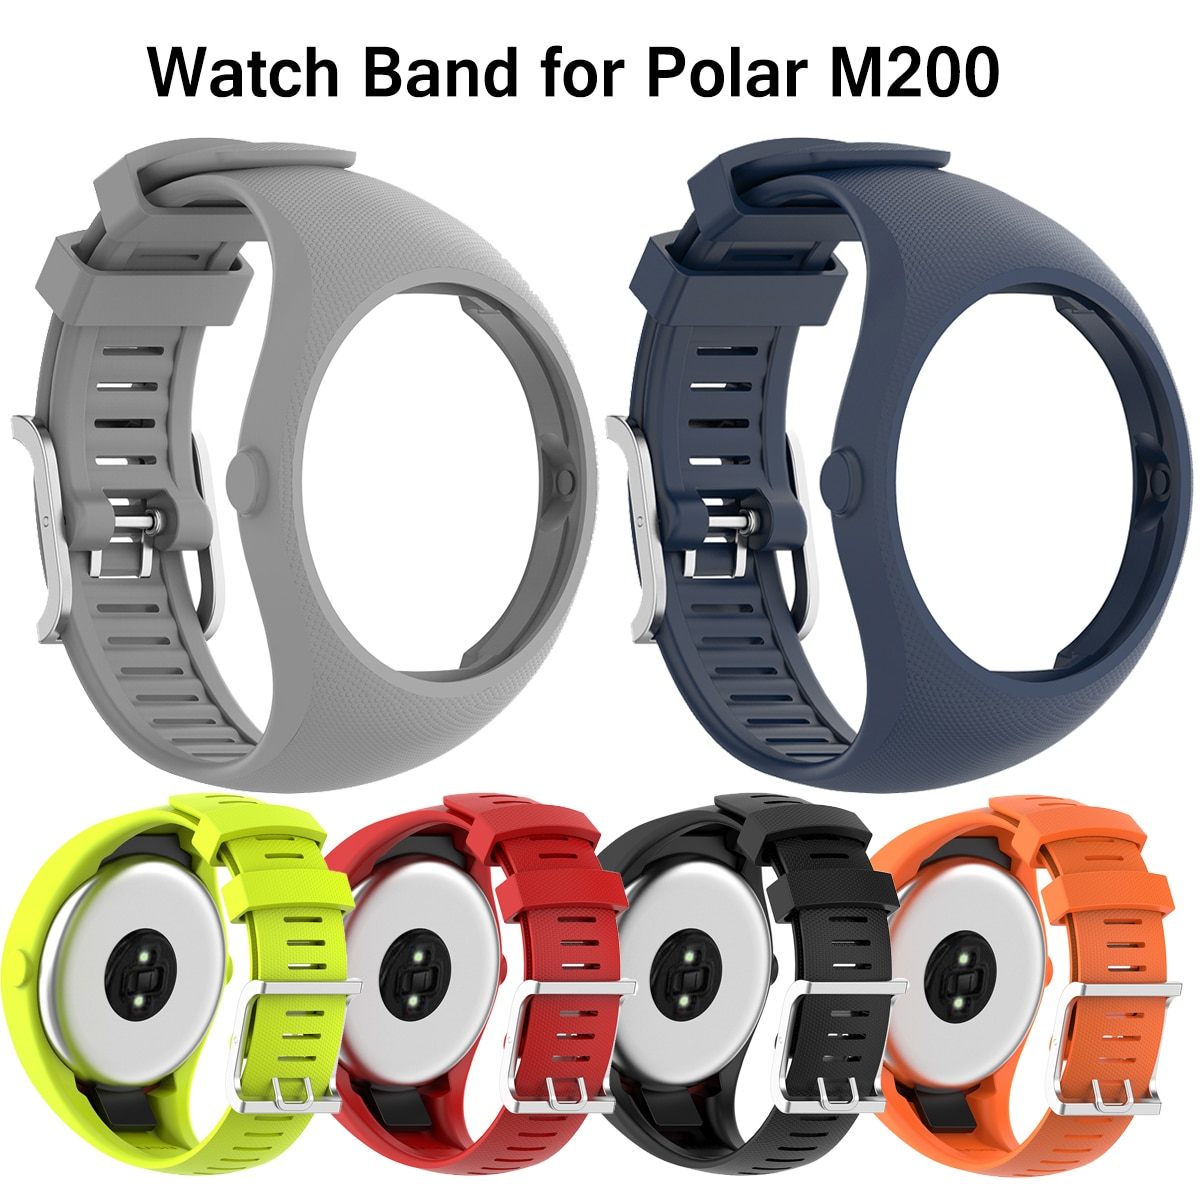 High Quality Silicone Watchband new Wrist Strap for Polar M200 smart Watch sport Replacement Bracelet For Polar M200 Accessories high quality comfortable silicone replacement wrist watch band for polar v800 smart bracelet with tool smart watch strap